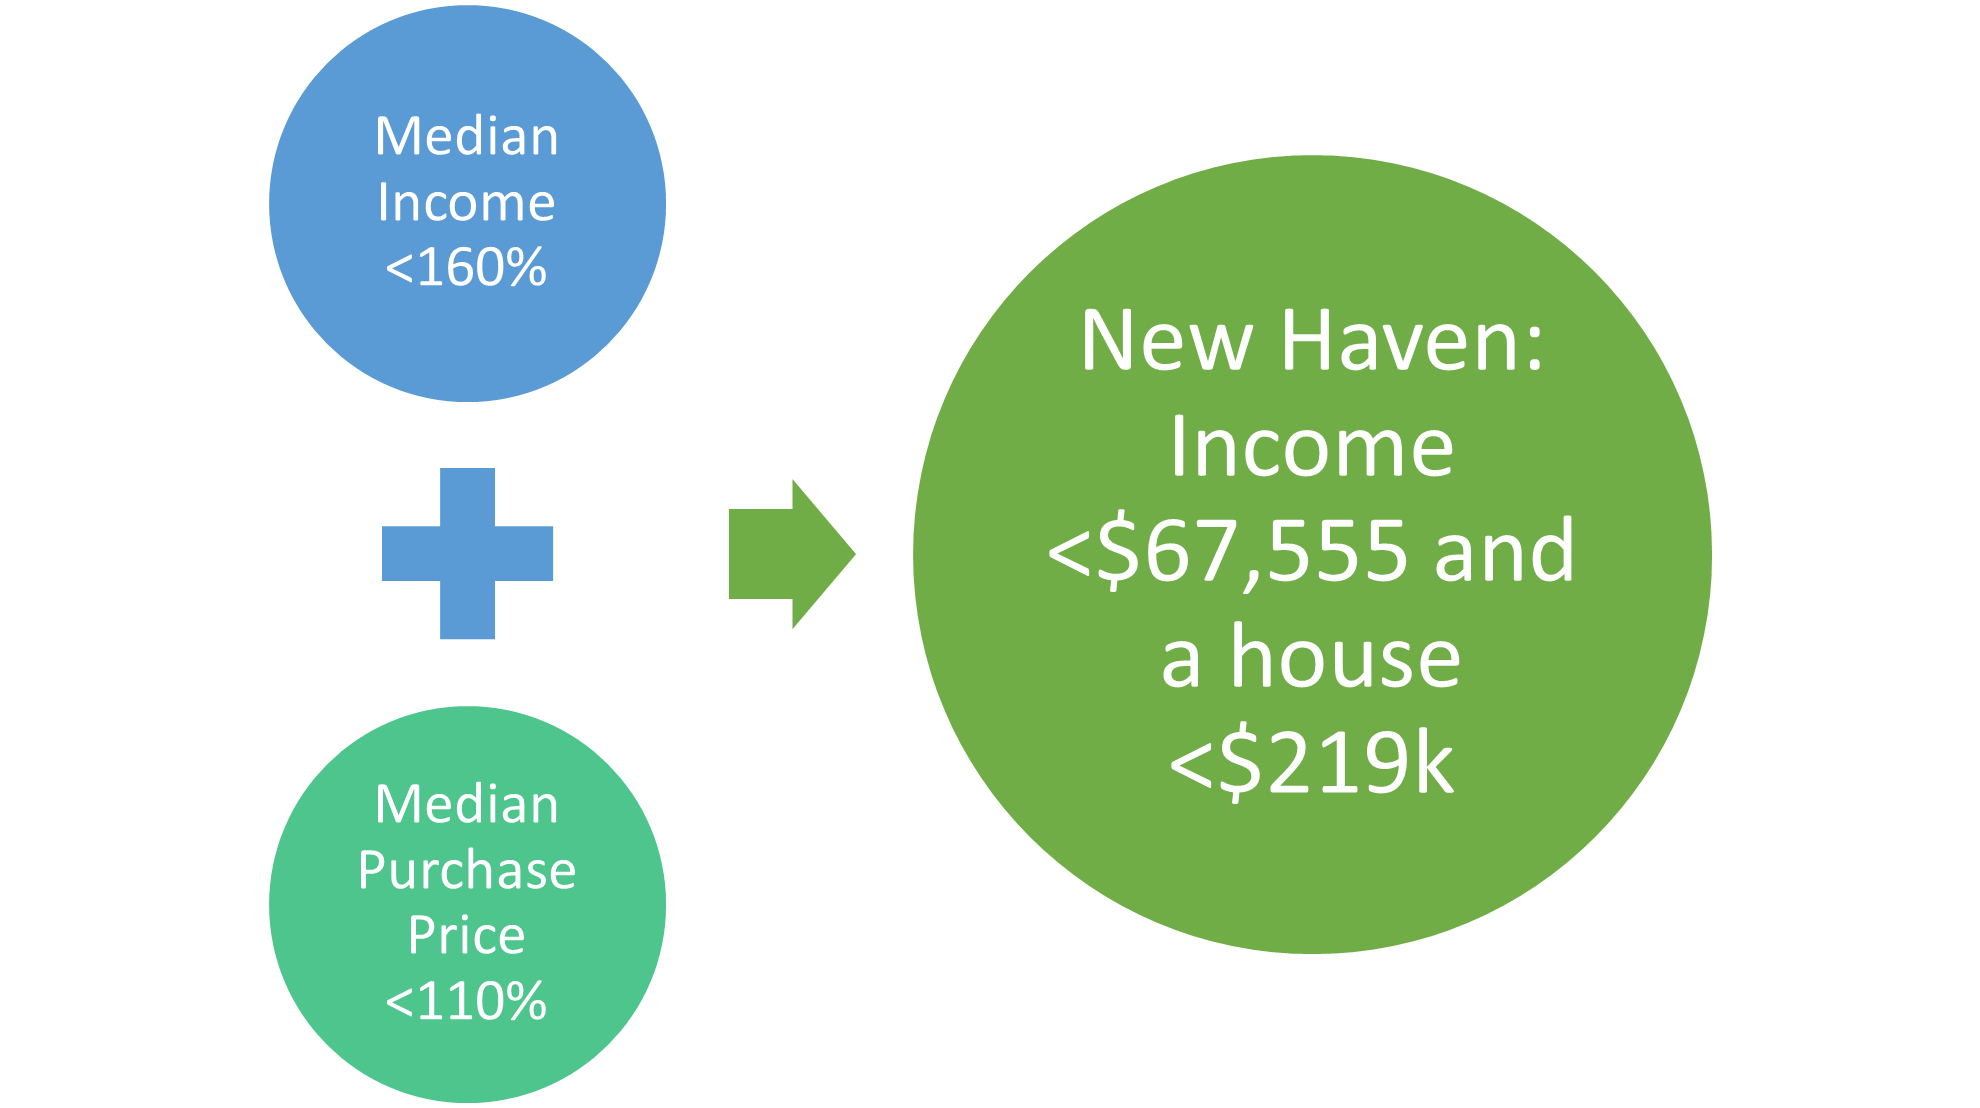 NH Median Income